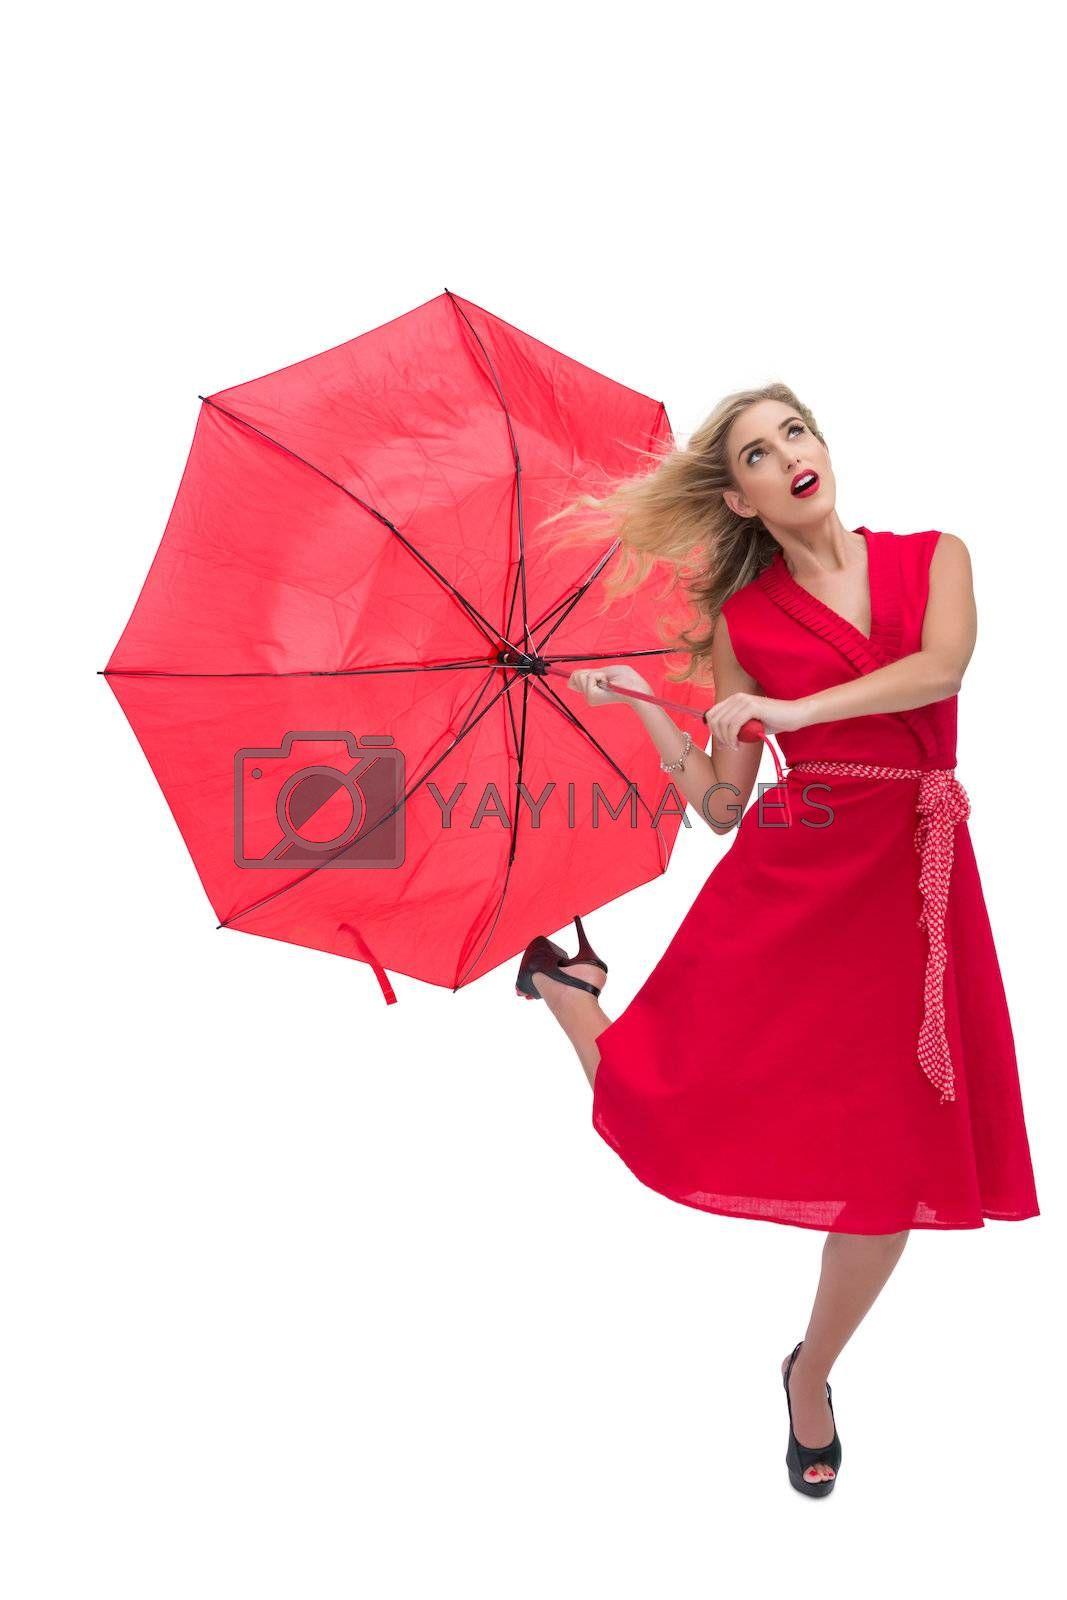 Beautiful woman wearing red dress holding umbrella  by Wavebreakmedia